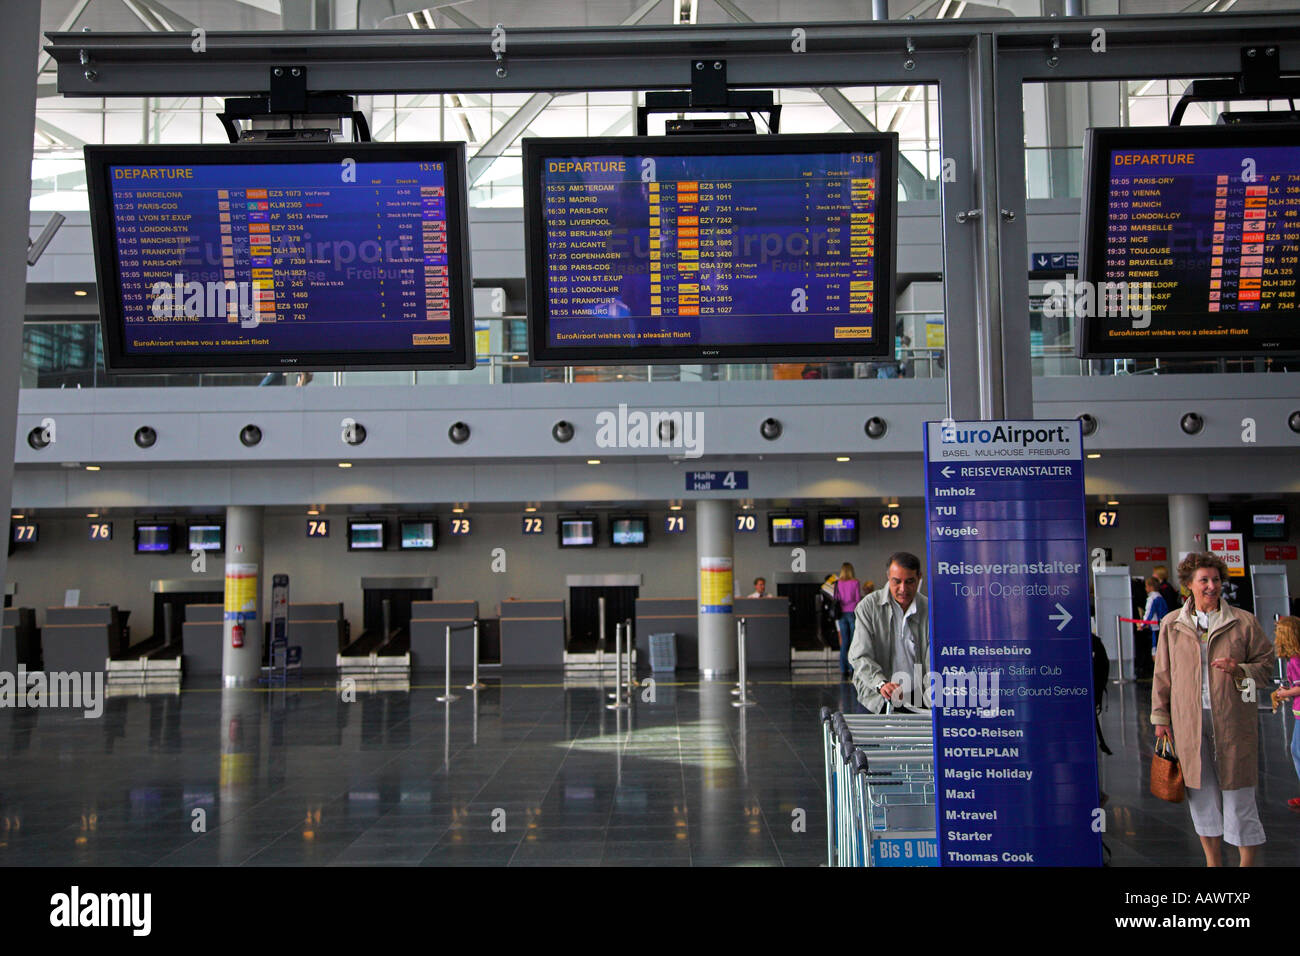 arrival departure board at the euroairport basel mulhouse freiburg in stock photo 12712317 alamy. Black Bedroom Furniture Sets. Home Design Ideas